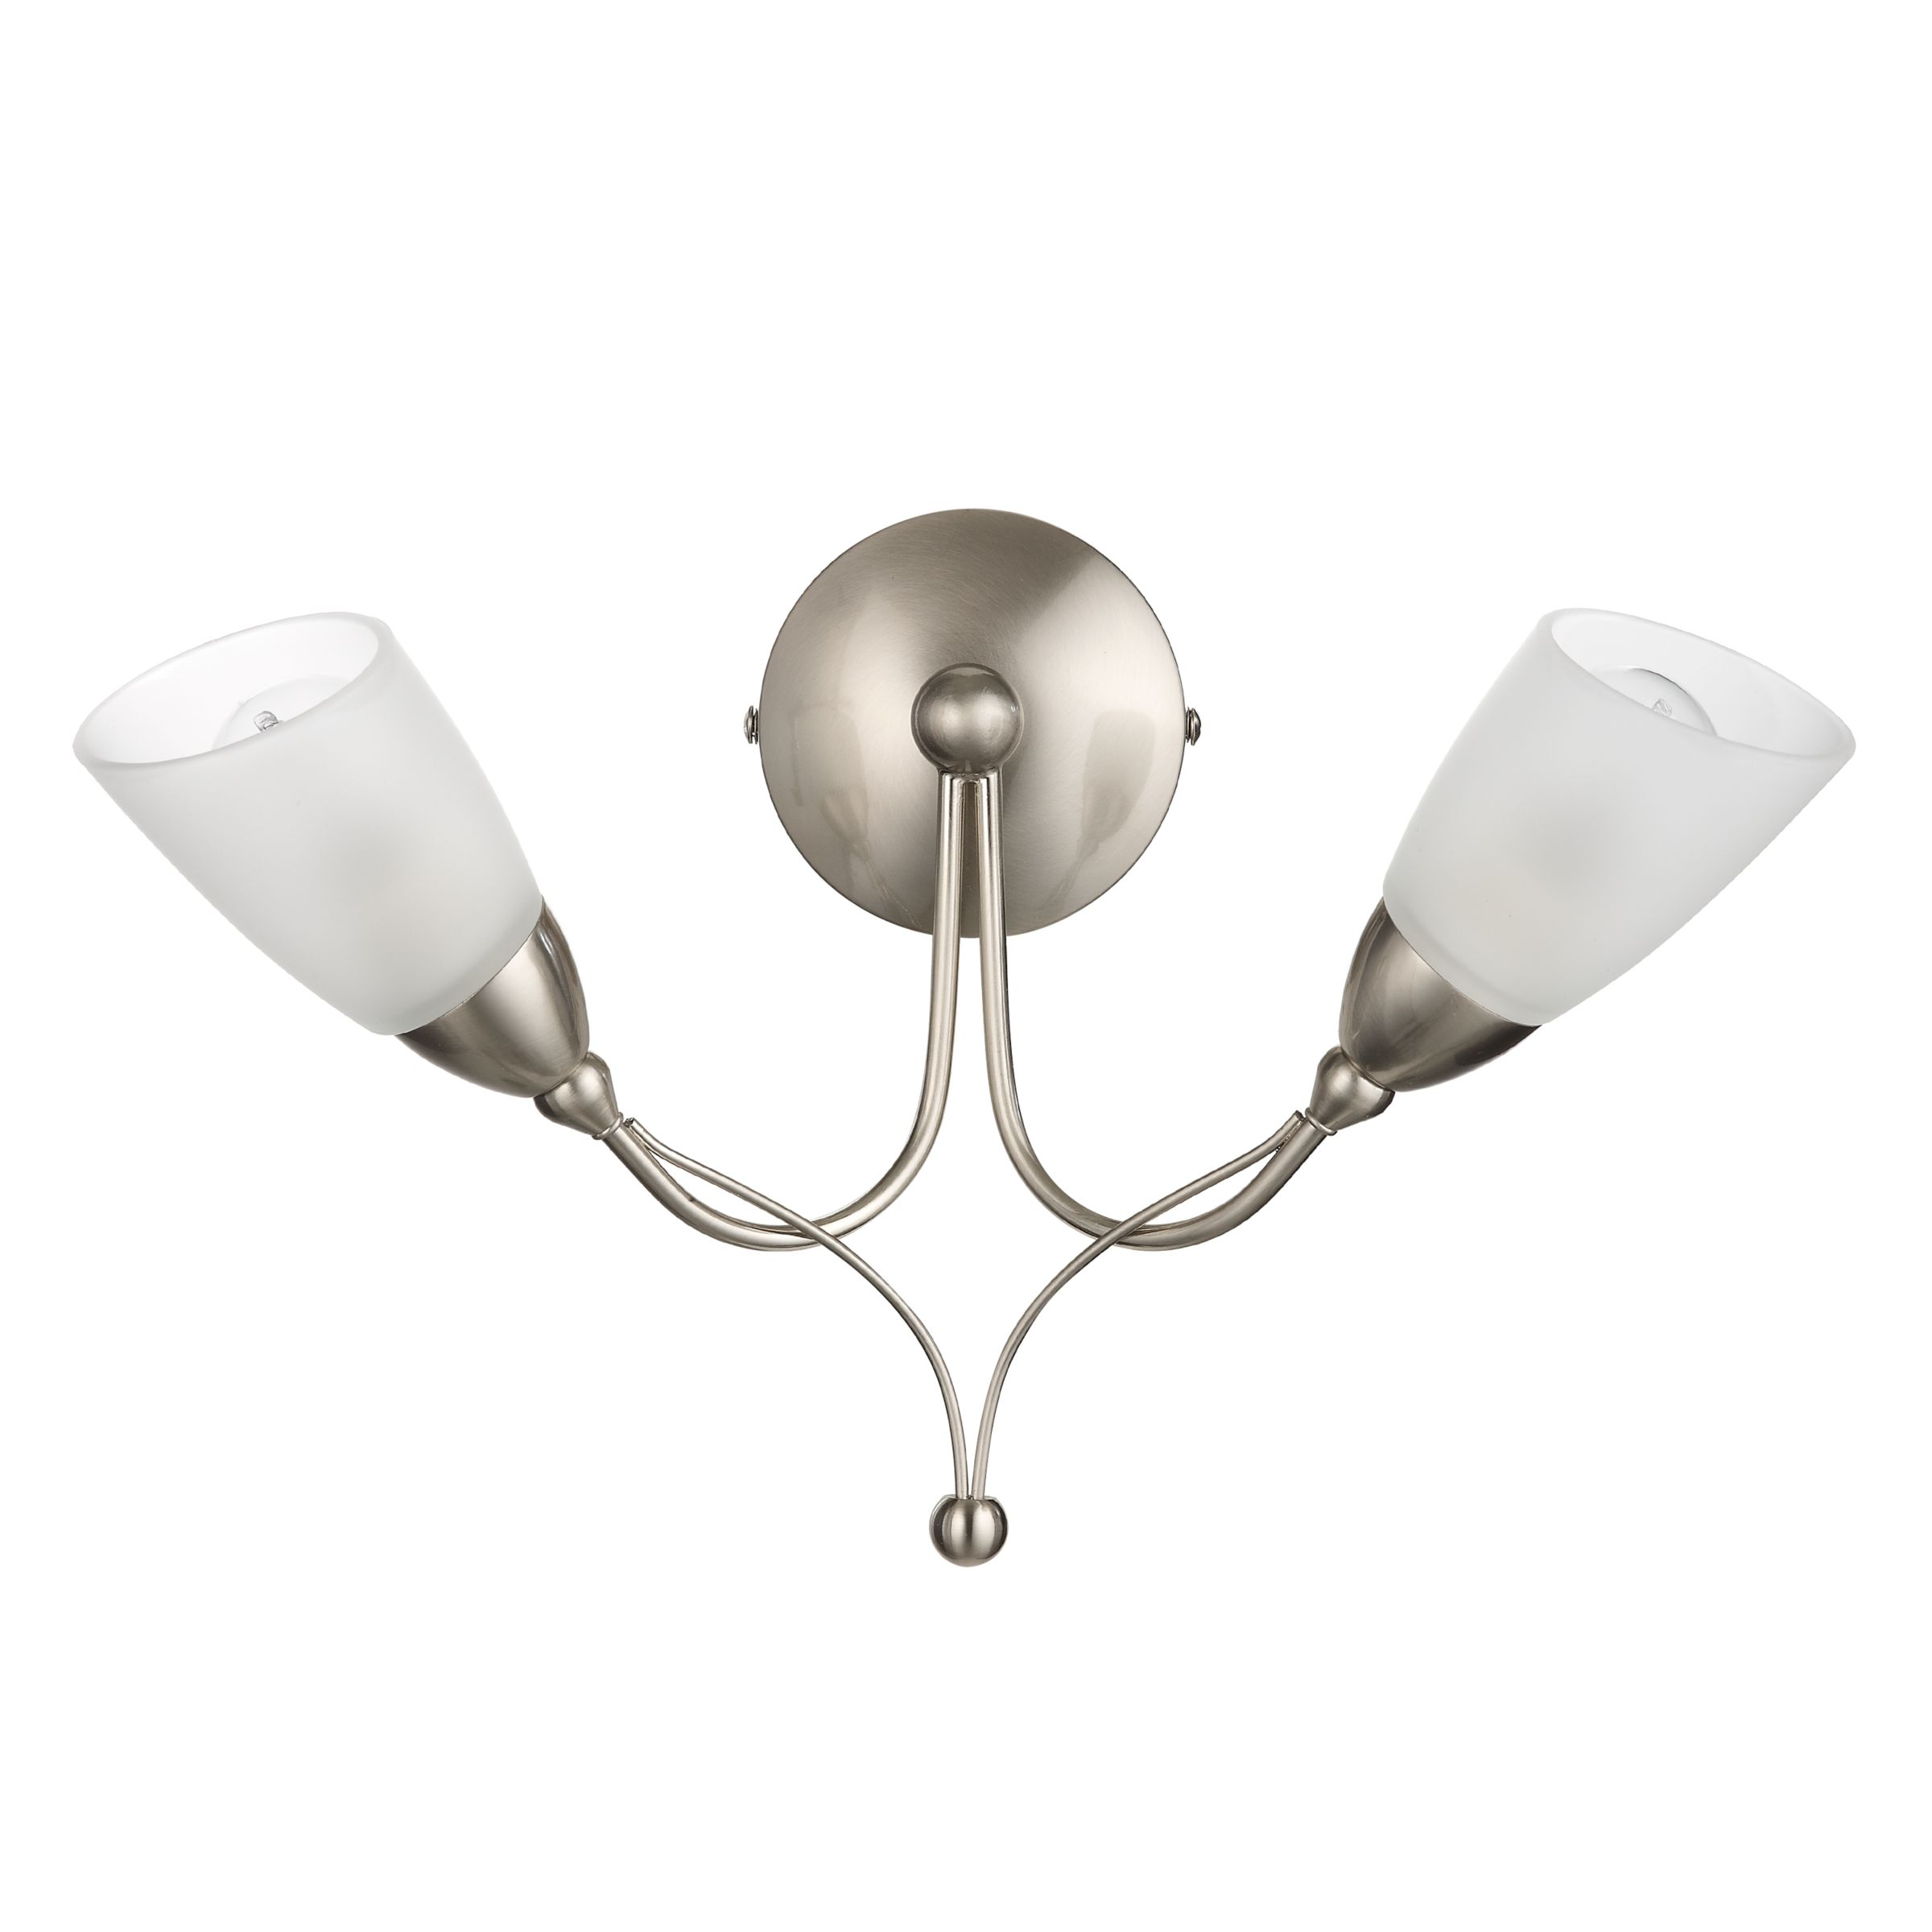 Yasmin Wall Light 2 Arm : john lewis wall lights reviews